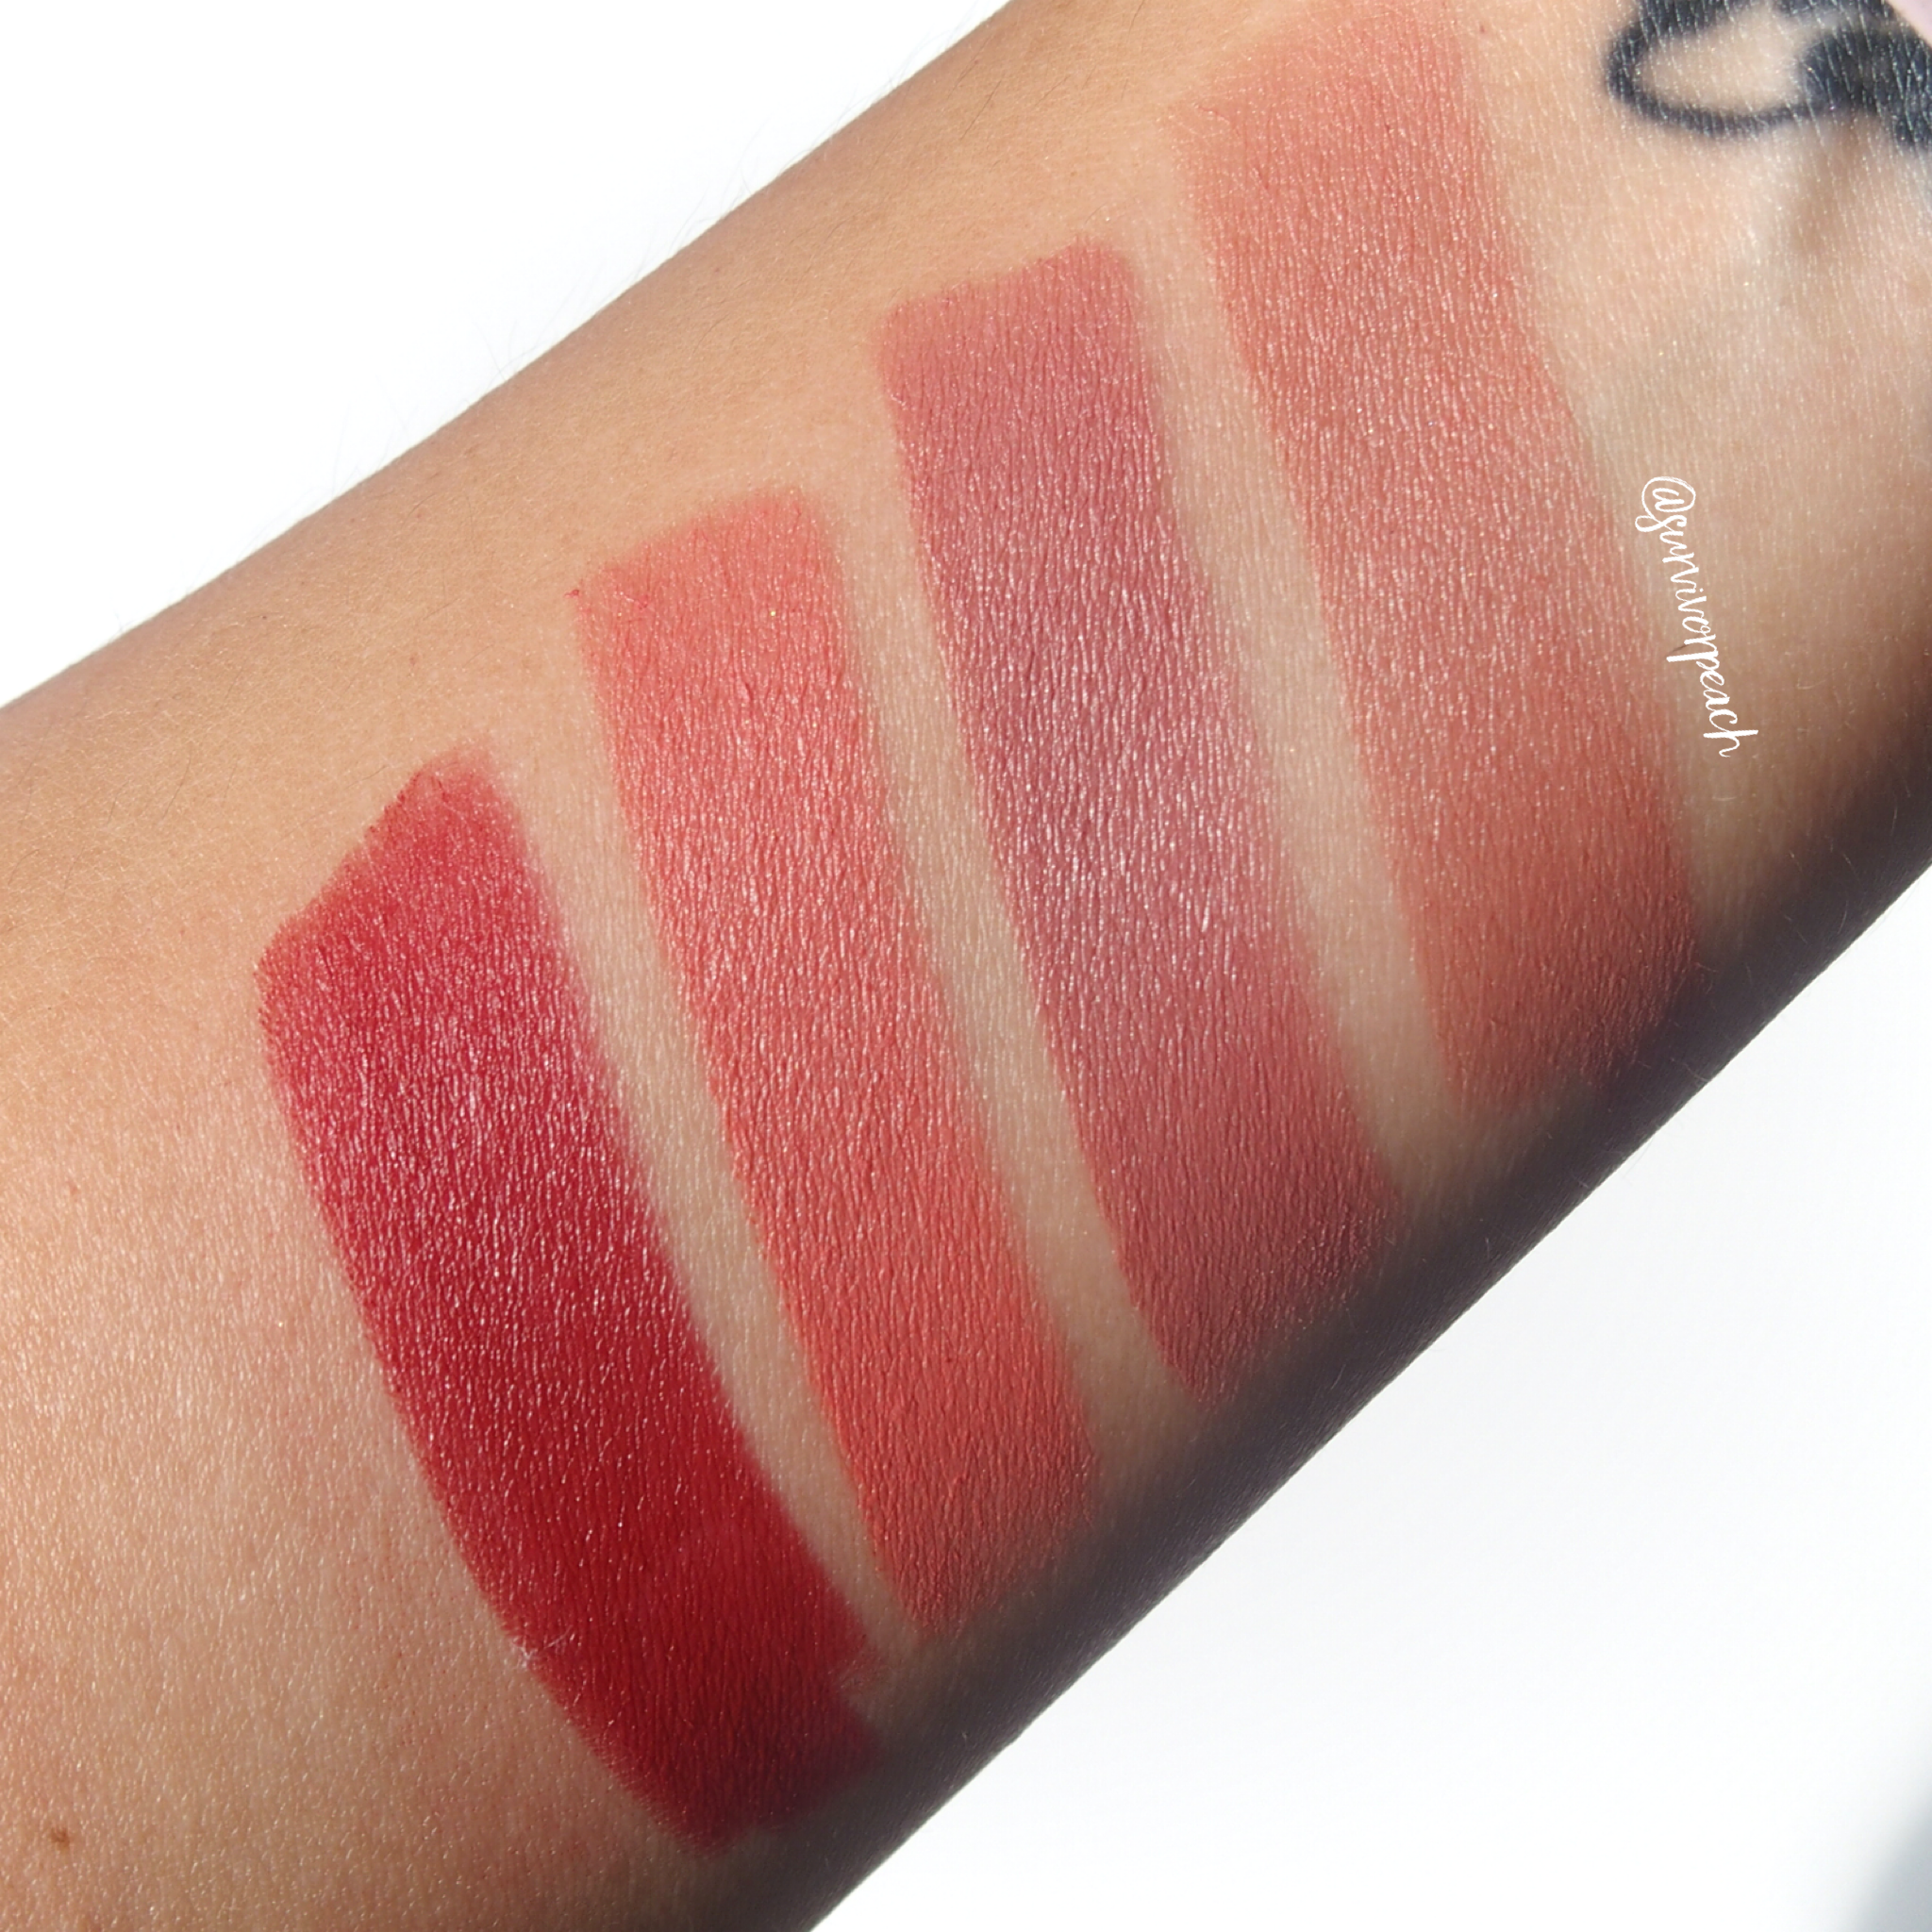 Swatches of the Charlotte Tilbury Matte Revolution Lipsticks in shades English Beauty, Pillow Talk, Sexy Sienna, Legendary Queen